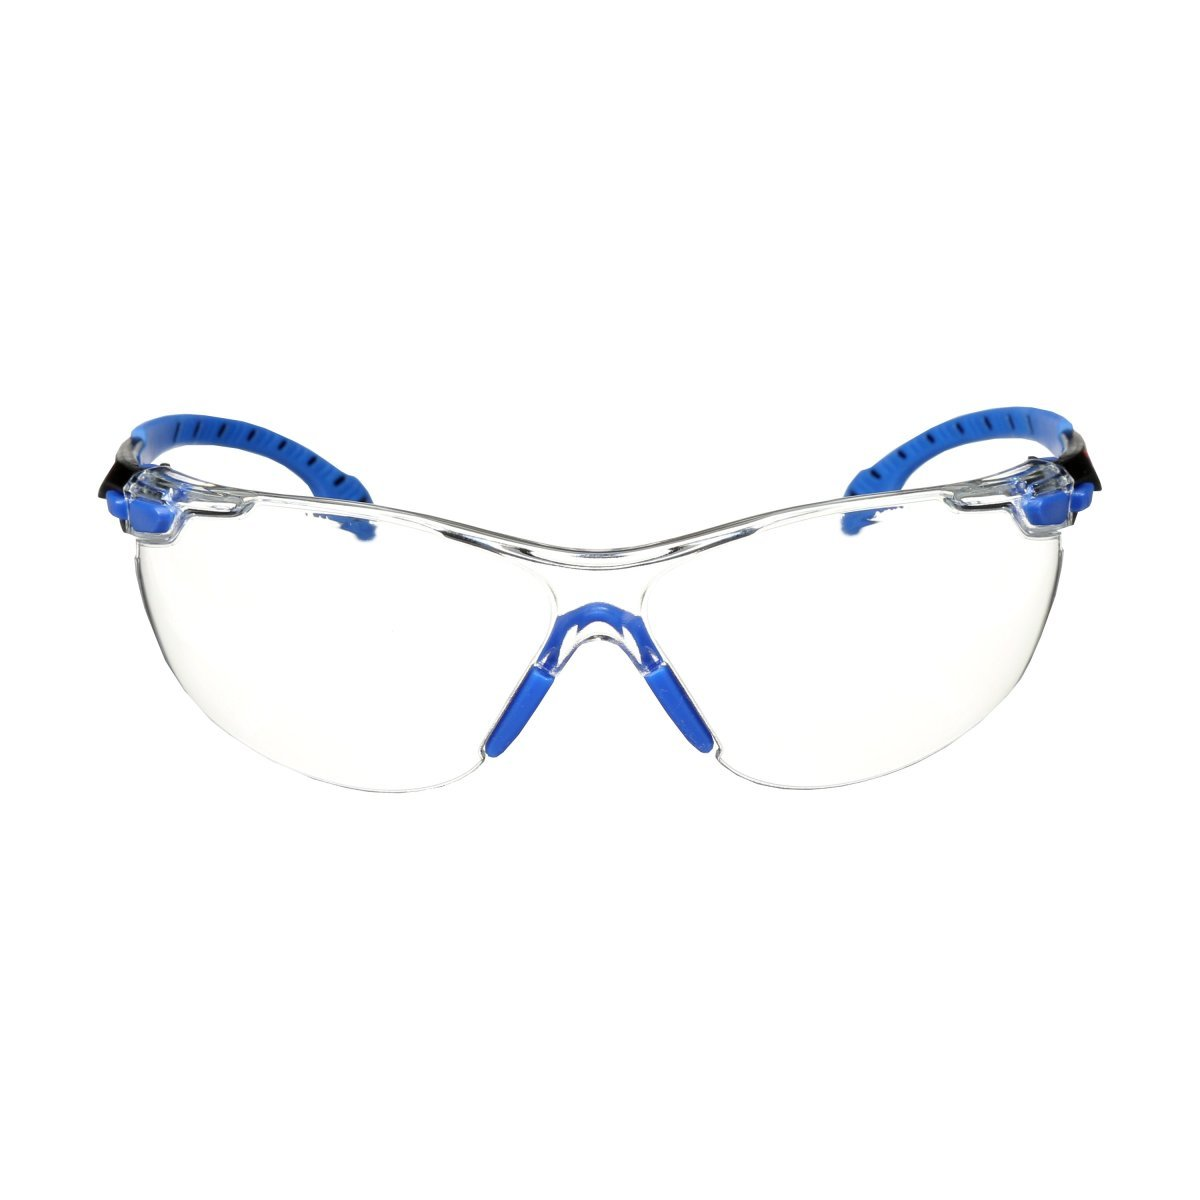 3M™ Solus™ Blue Black Safety Glasses With Clear Anti-Fog Lens aa7556cd6b1a